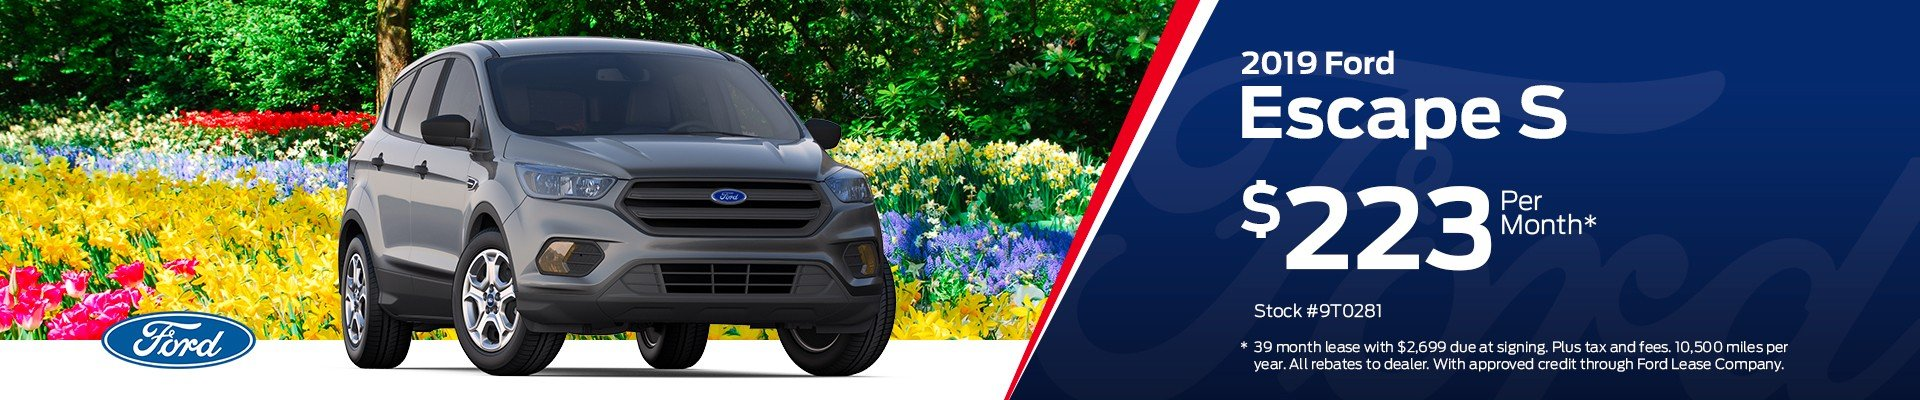 Wichita residents get a great deal on the 2019 For Escape S only at Rusty Eck Ford!